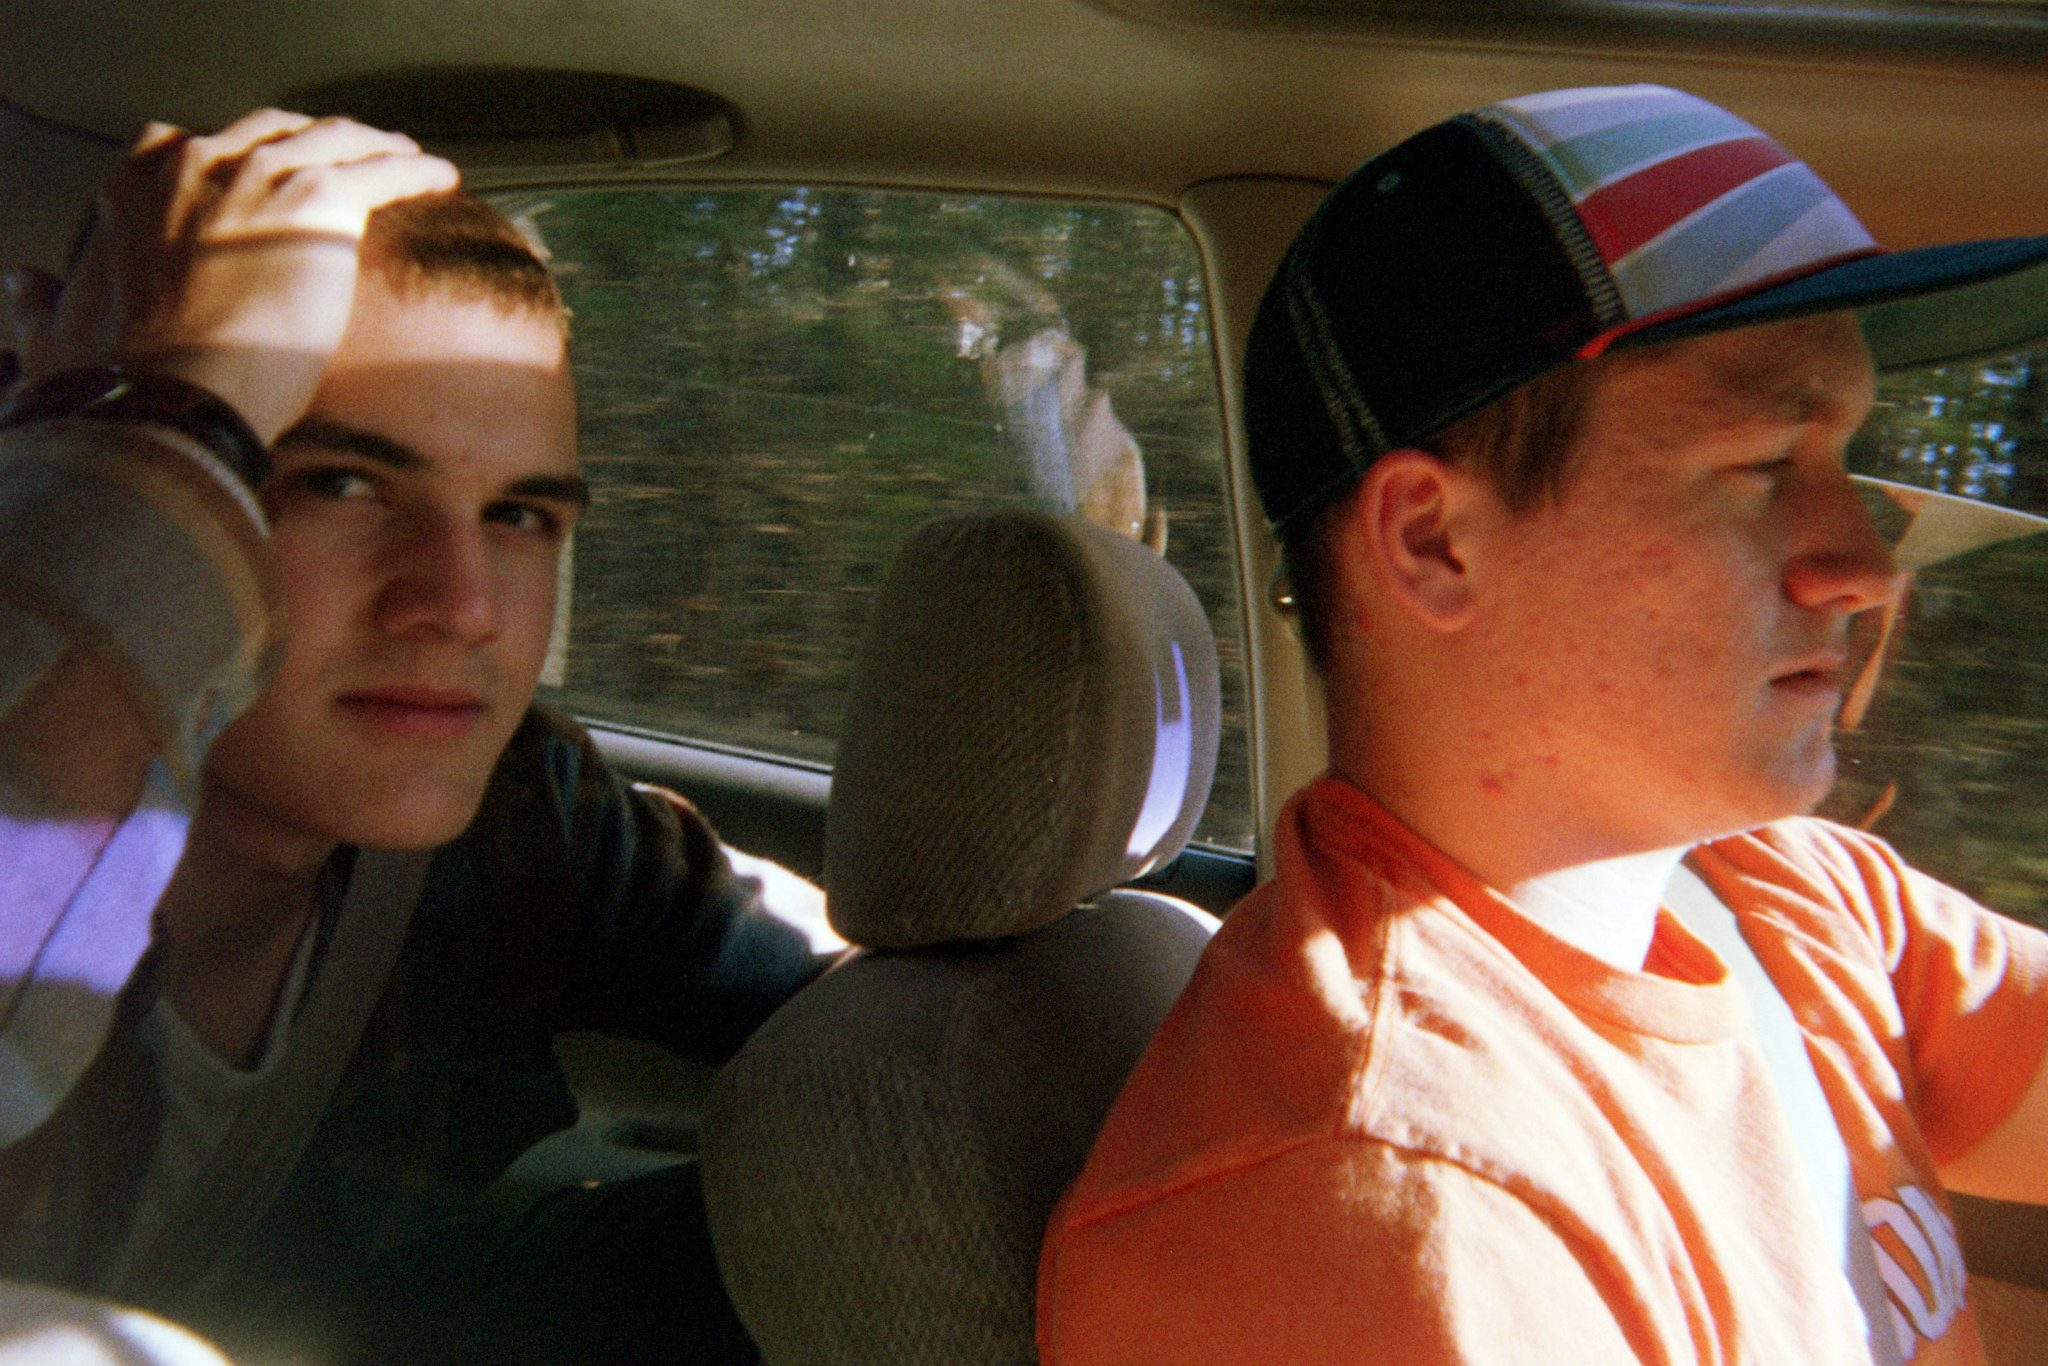 Conner and Forrest, 2013